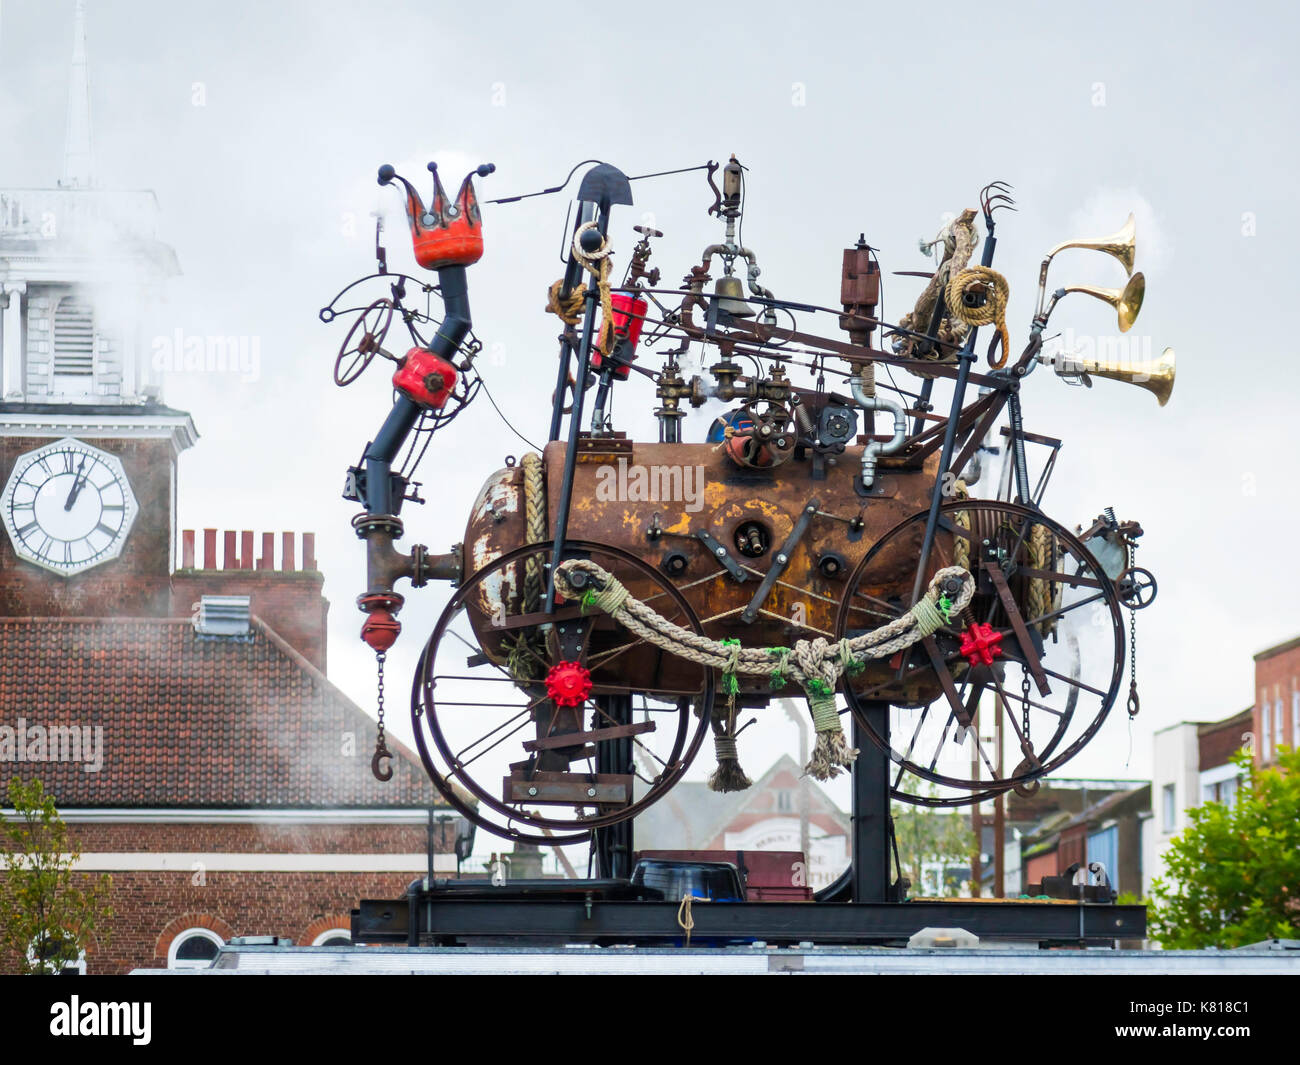 The Stockton Flyer automaton sculpture based on Stephensons Locomotion designed by Rob Higgs has bells whistles and blows steam daily at 1:00 p.m. - Stock Image